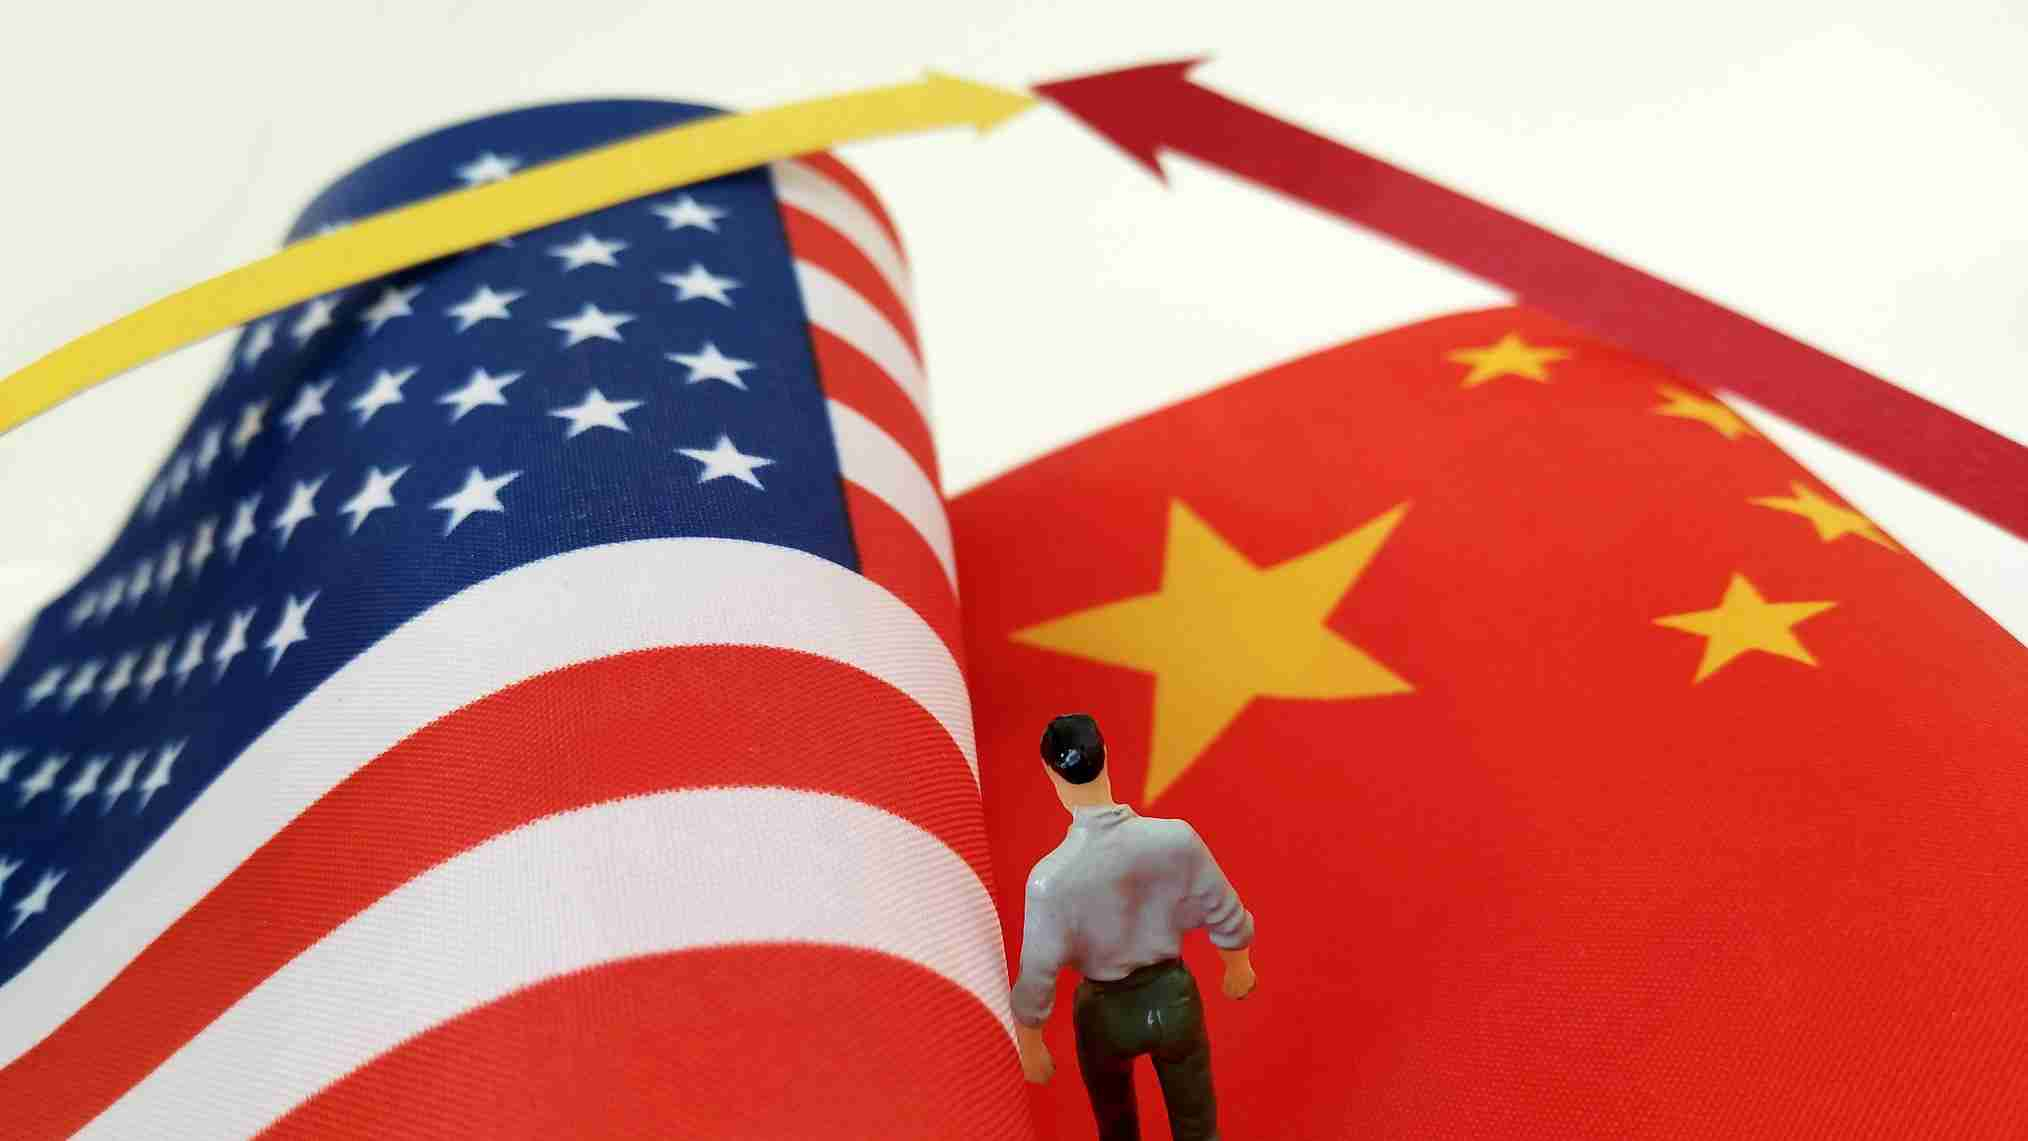 Experts say US-China relationship needs stronger diplomatic, commercial relations